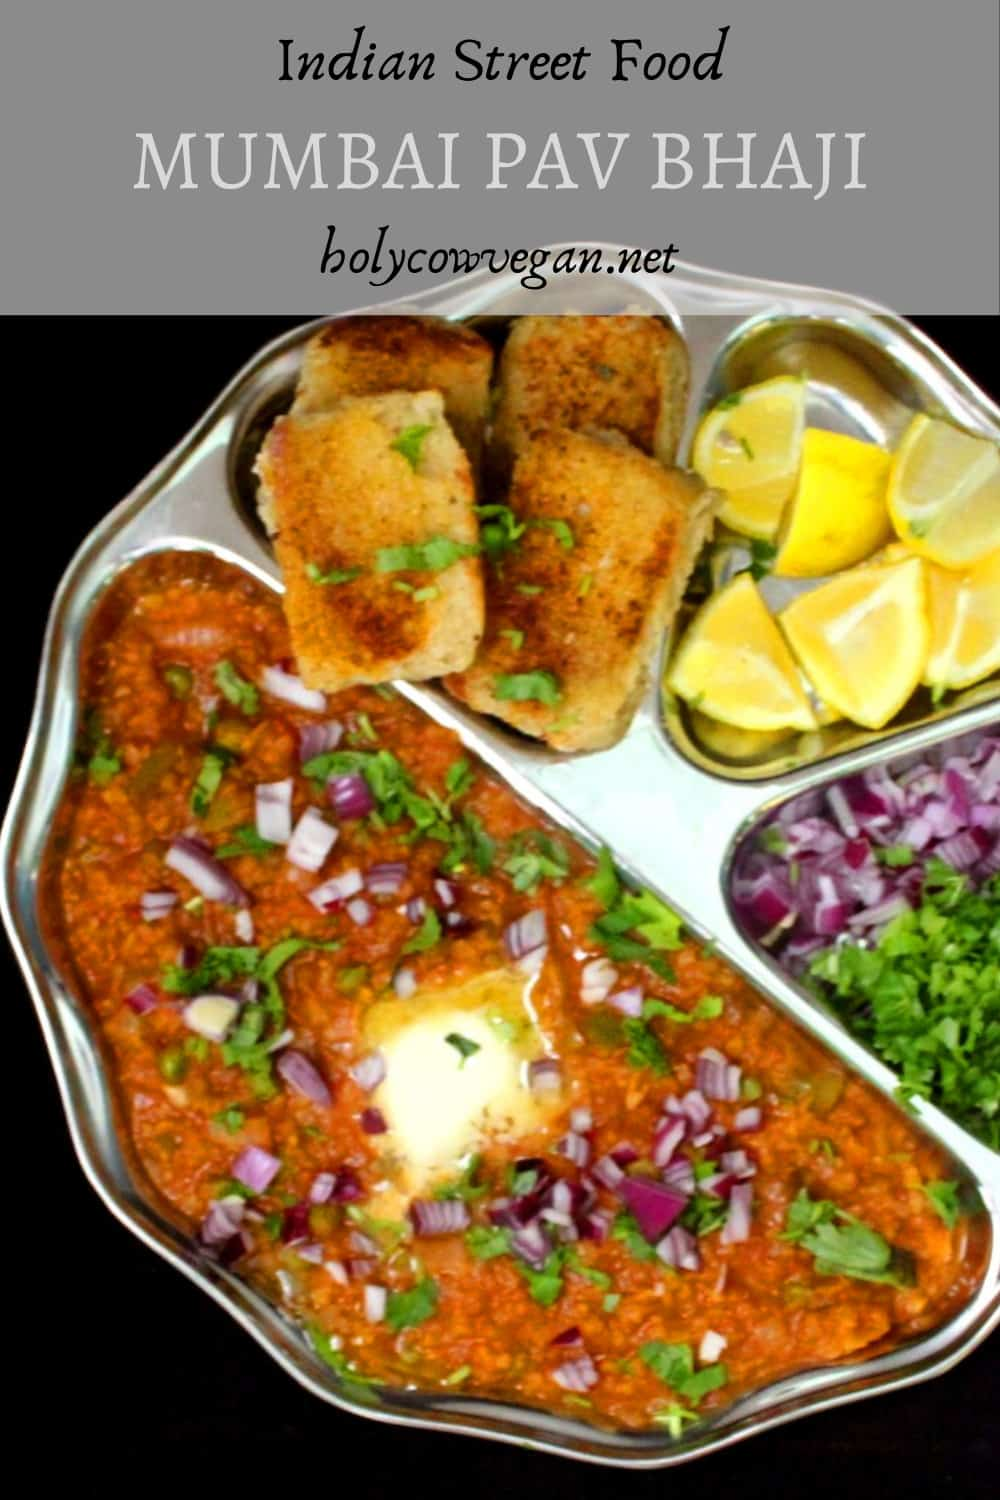 A plate of Pav Bhaji with butter, pao or pav bread rolls, lemons, onions and cilantro. A vegetarian vegan recipe from the streets of India,